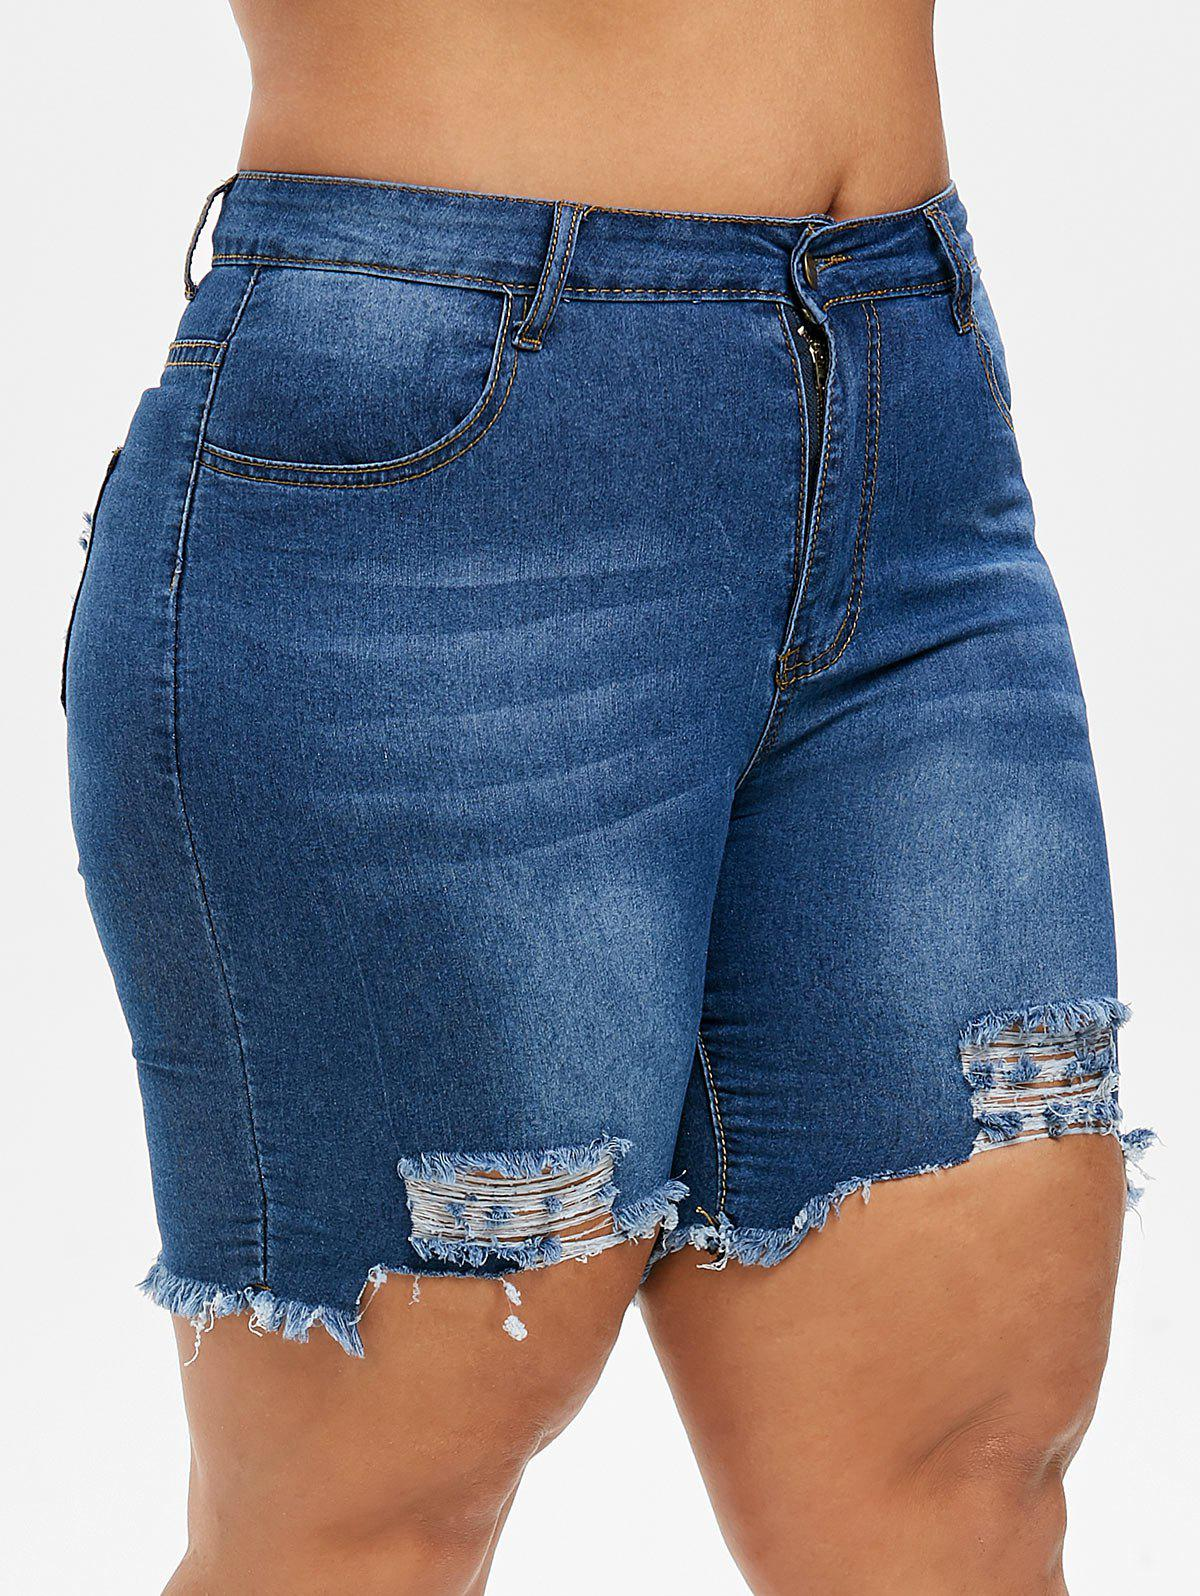 Plus Size Ripped Uneven Hem Jean Shorts - LAPIS BLUE M